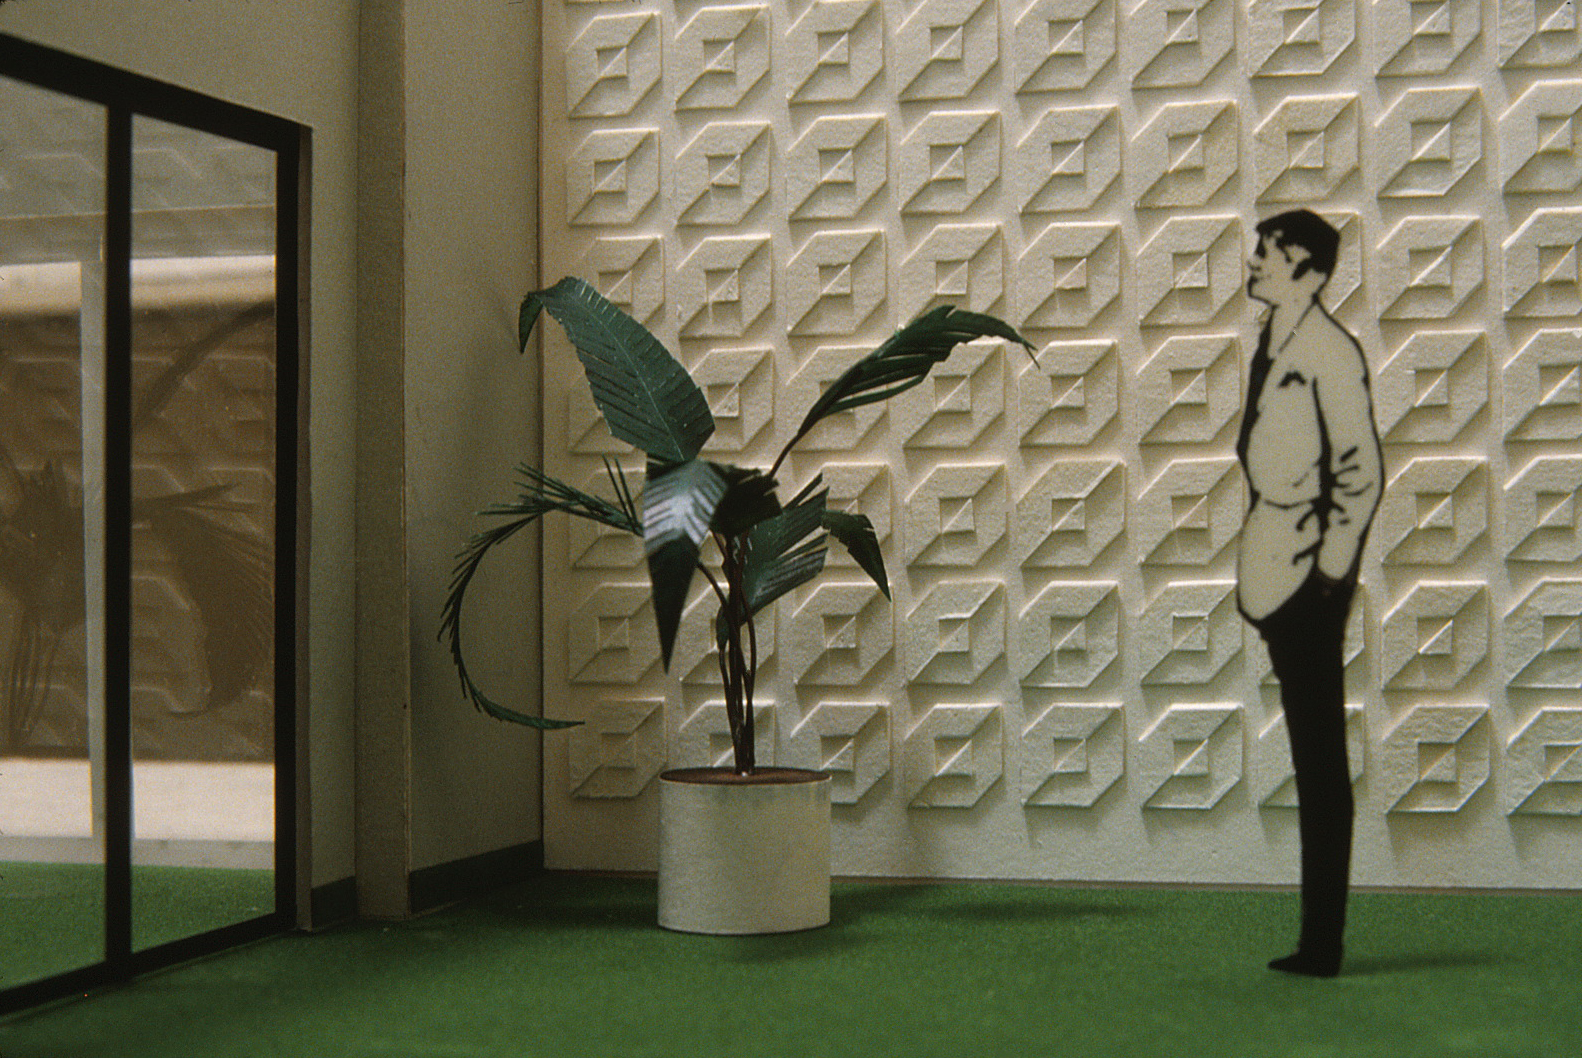 Model of an interior room in corporate headquarters featuring a repeat white on white logo on the wall,          with a plant, a door, and a man standing beside it.